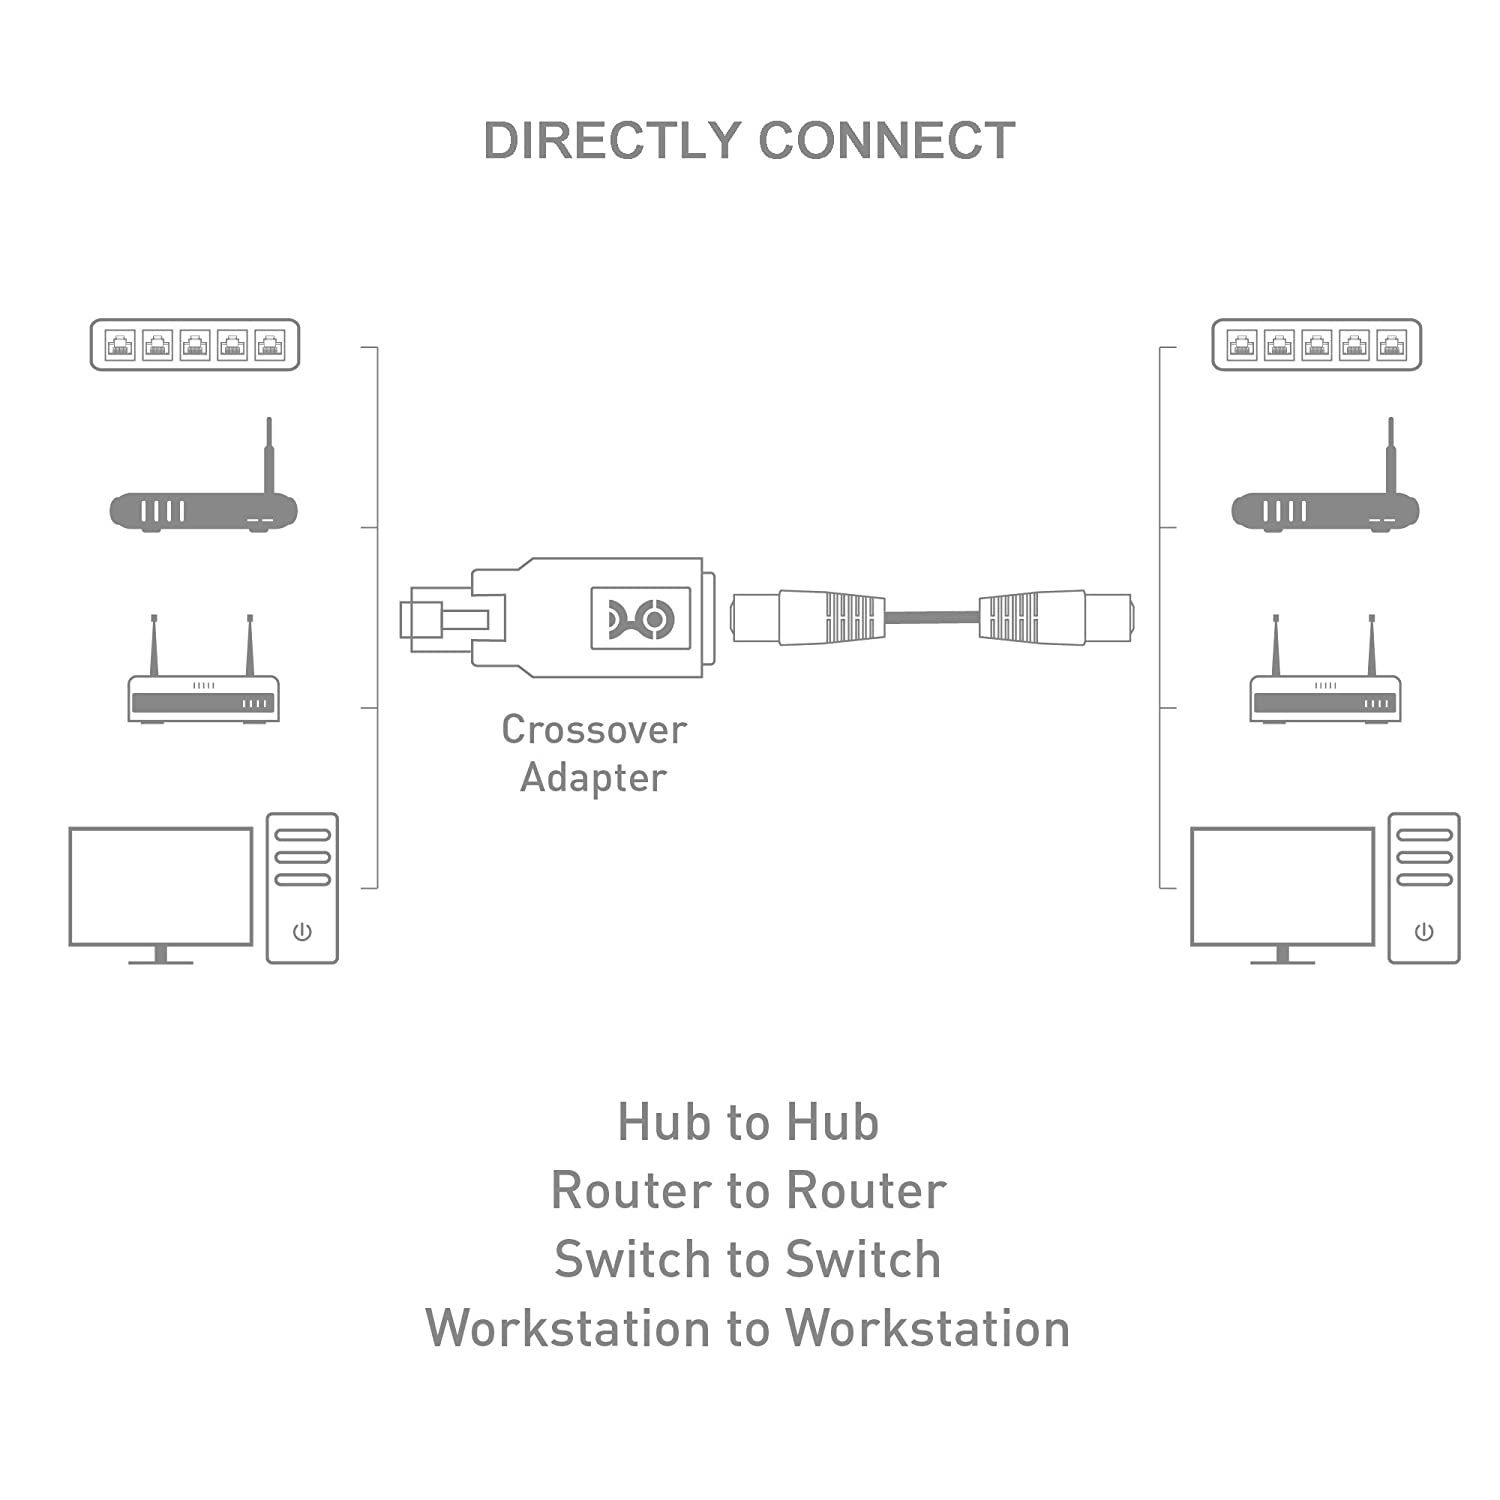 Cable Matters 2 Pack Cat 6 Cat6 Crossover Adapter Cat5e Gigabit Wiring Diagram Get Free Image About Home Audio Theater